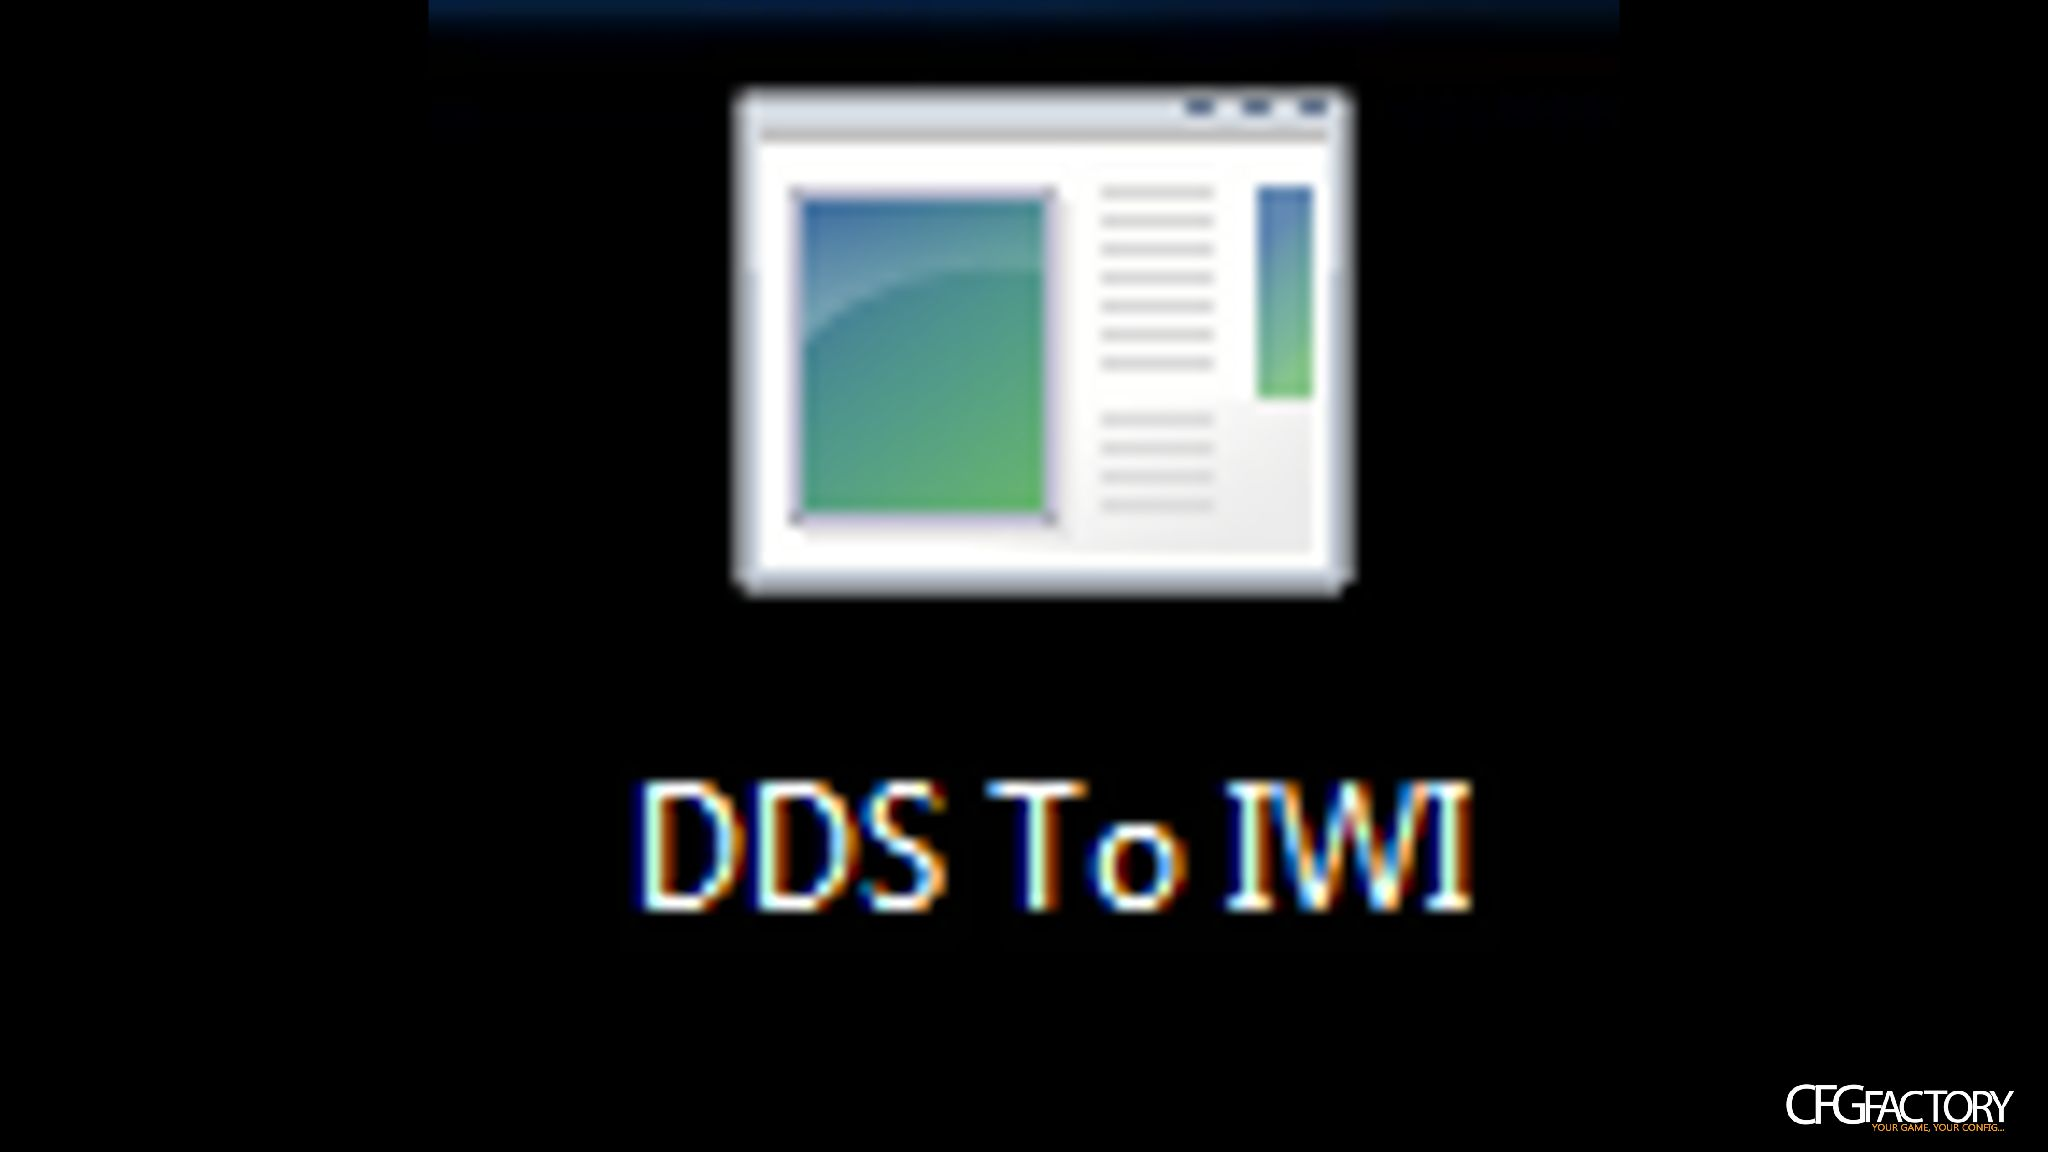 cod4, tools, iwi to dds and dds to iwi, n/a